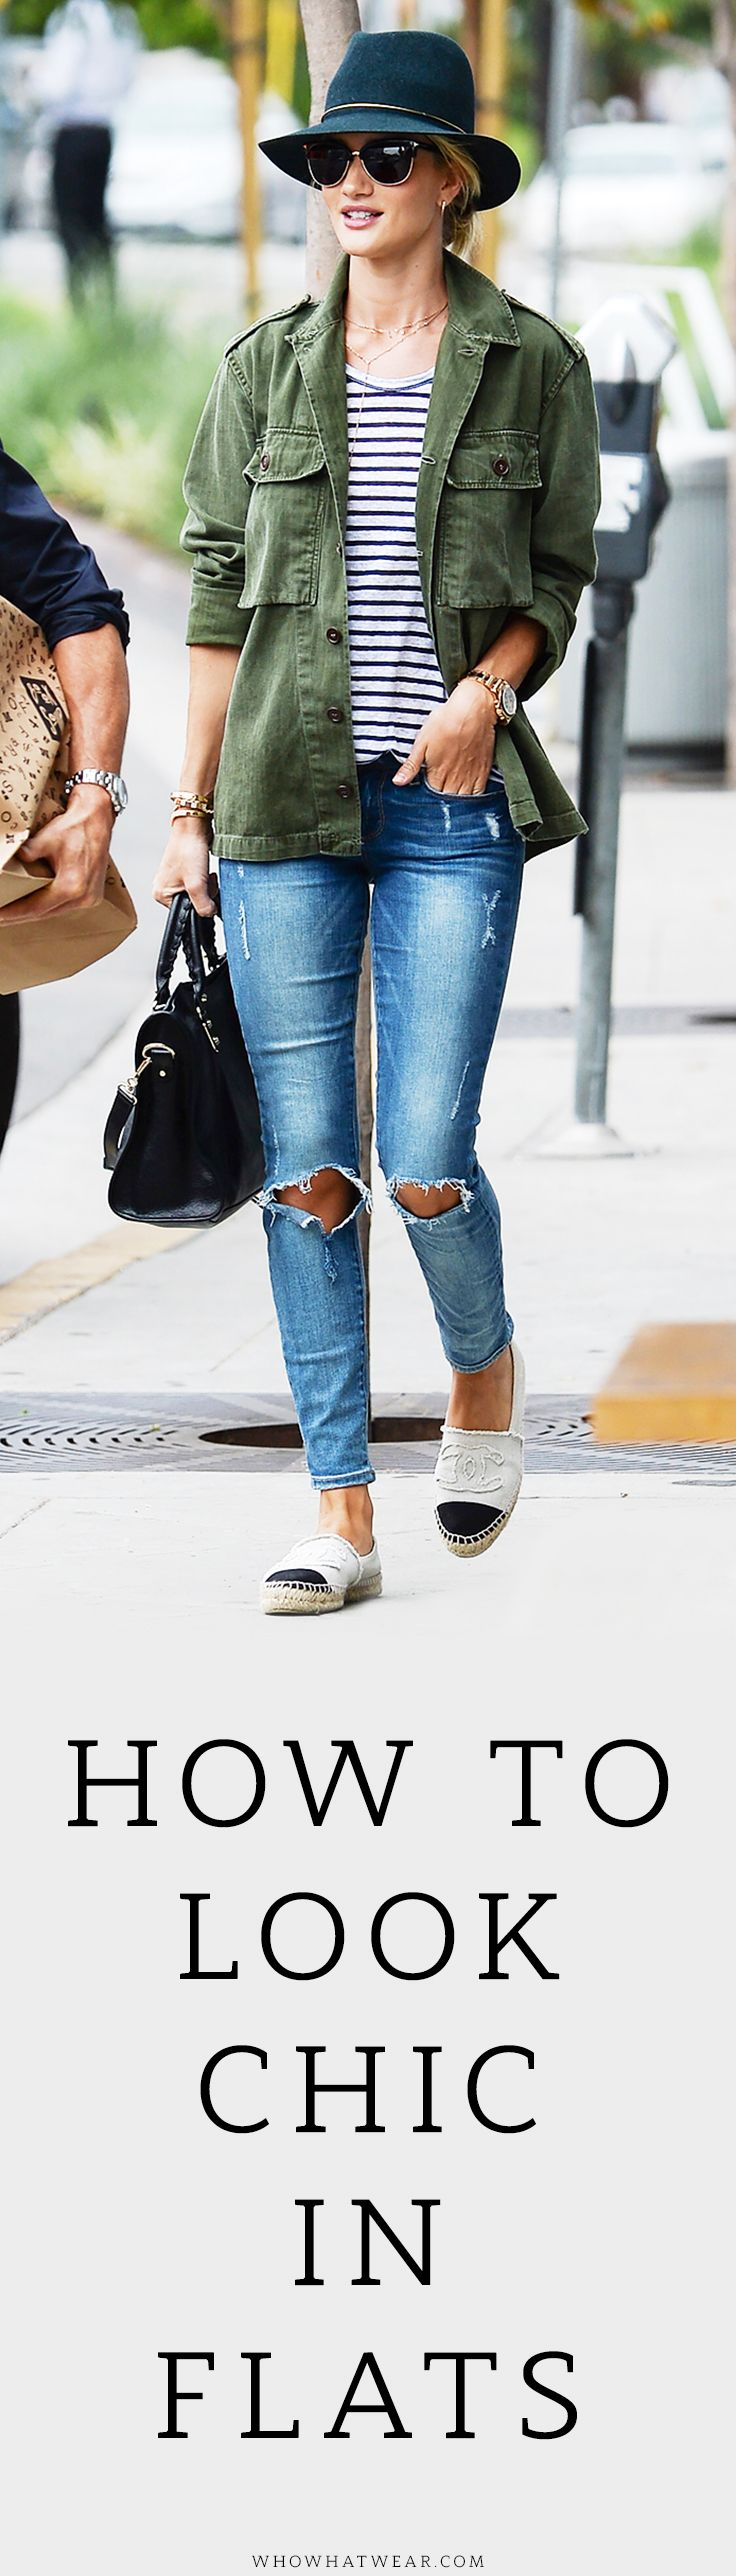 Celebs prove that flats can be sleek with any look.